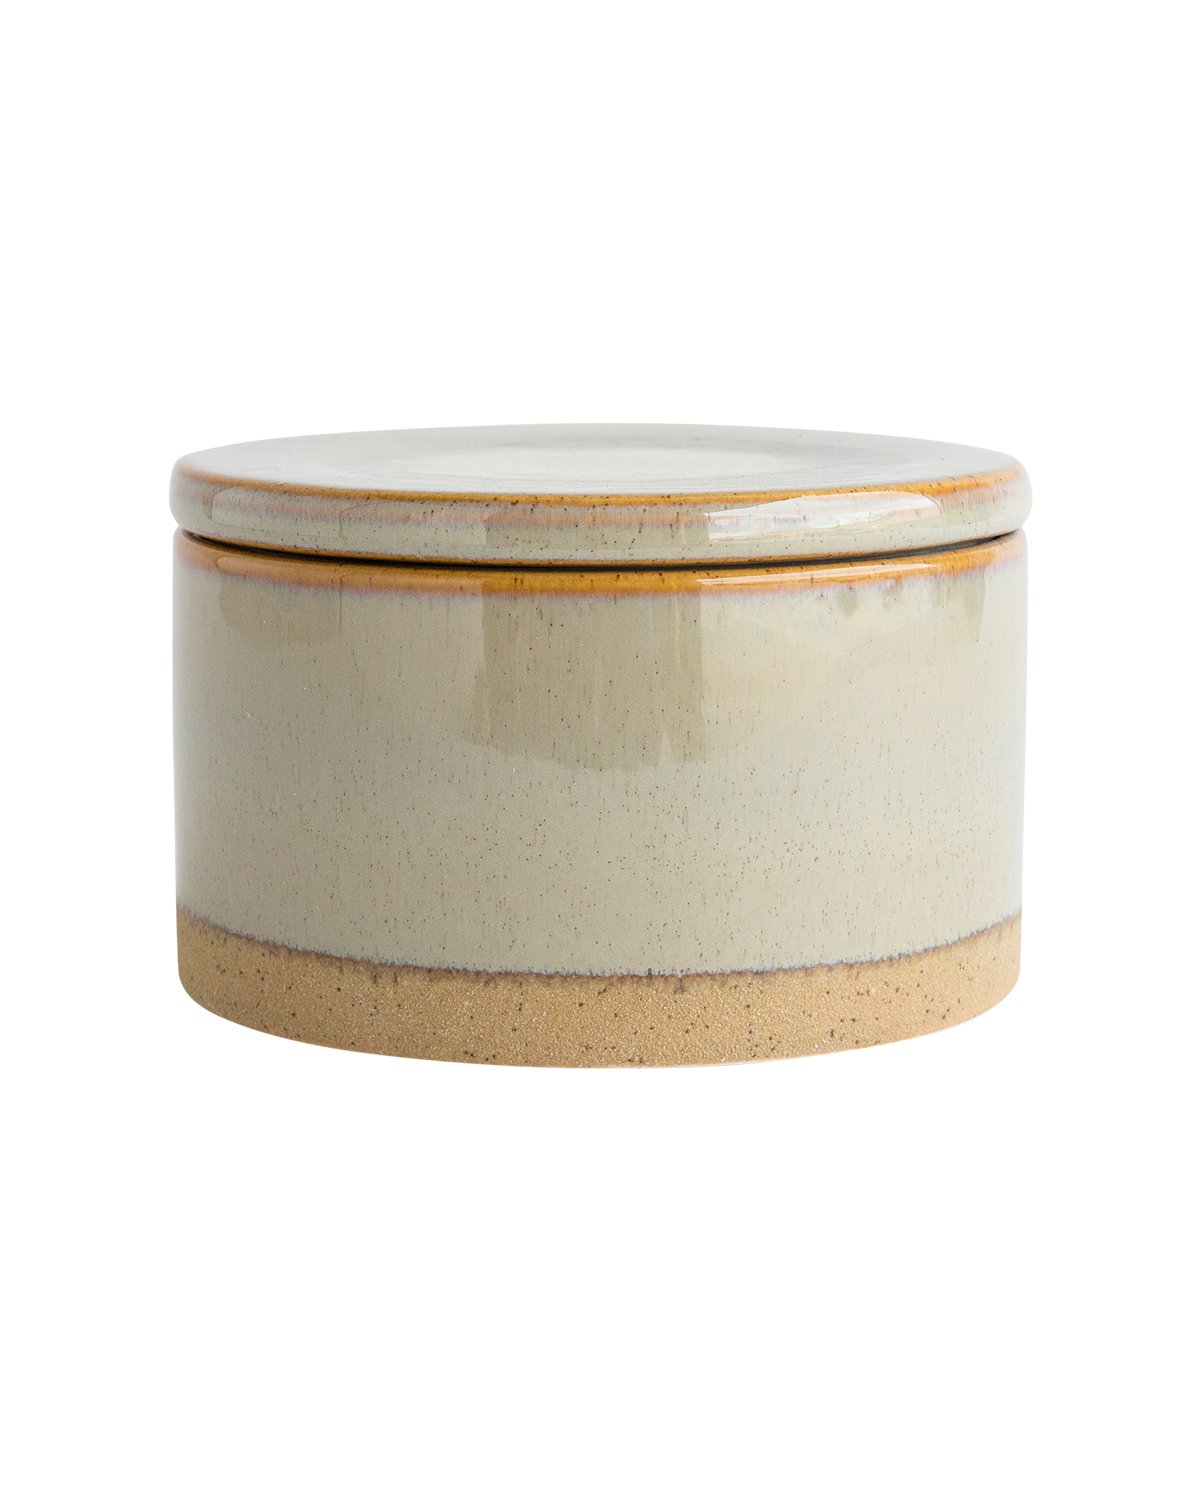 Sage_Dipped_Canister_1 2.jpg